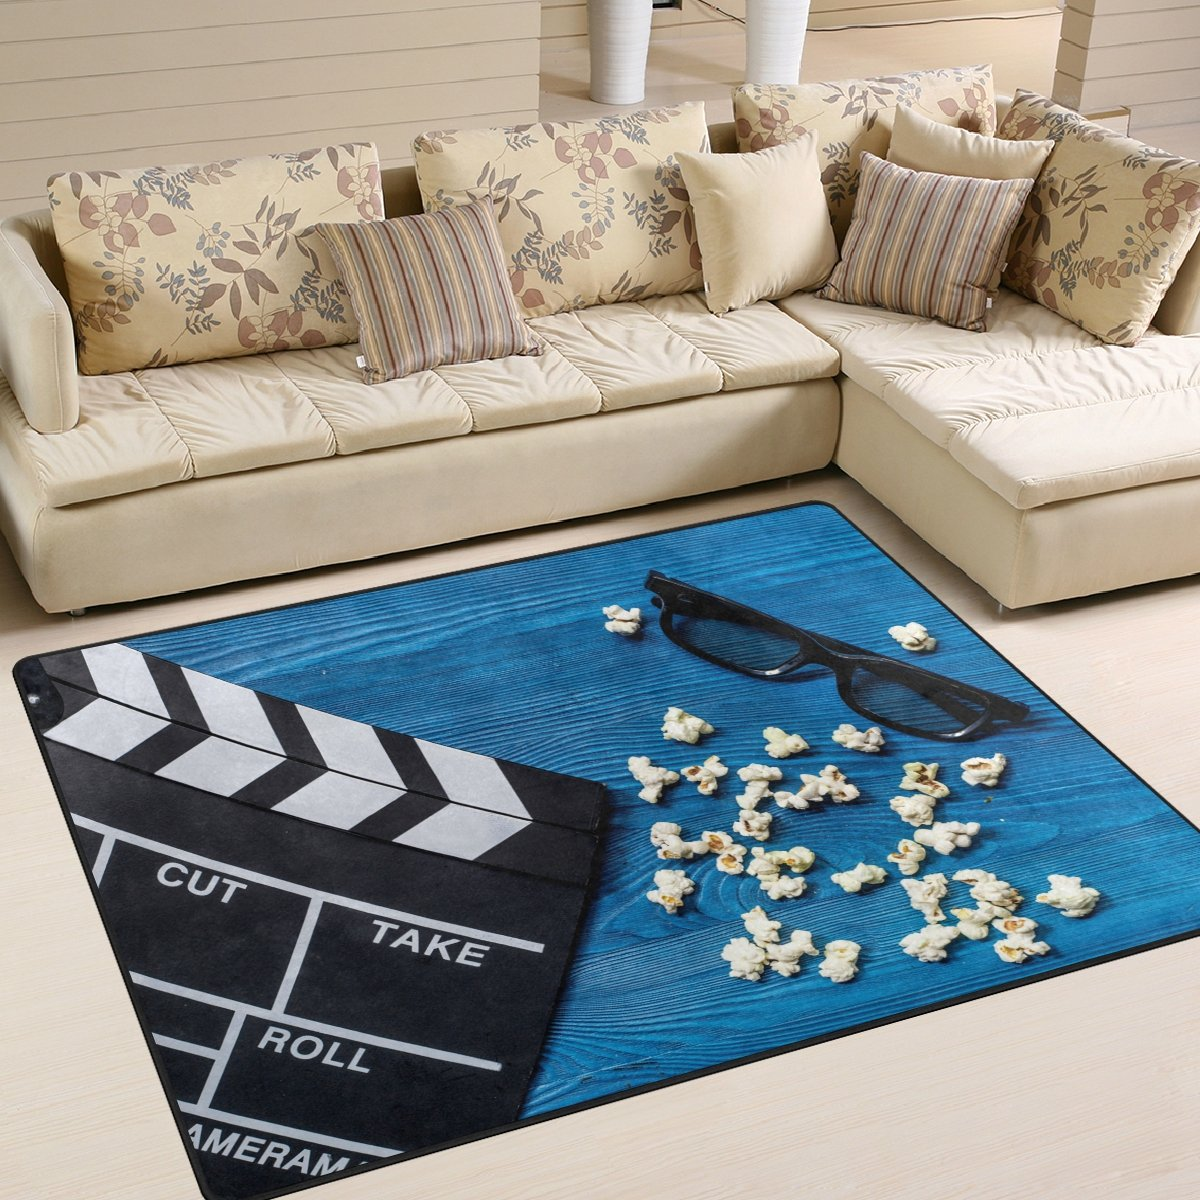 ALAZA Movie Clapboard Vintage Area Rug Rugs for Living Room Bedroom 7' x 5'